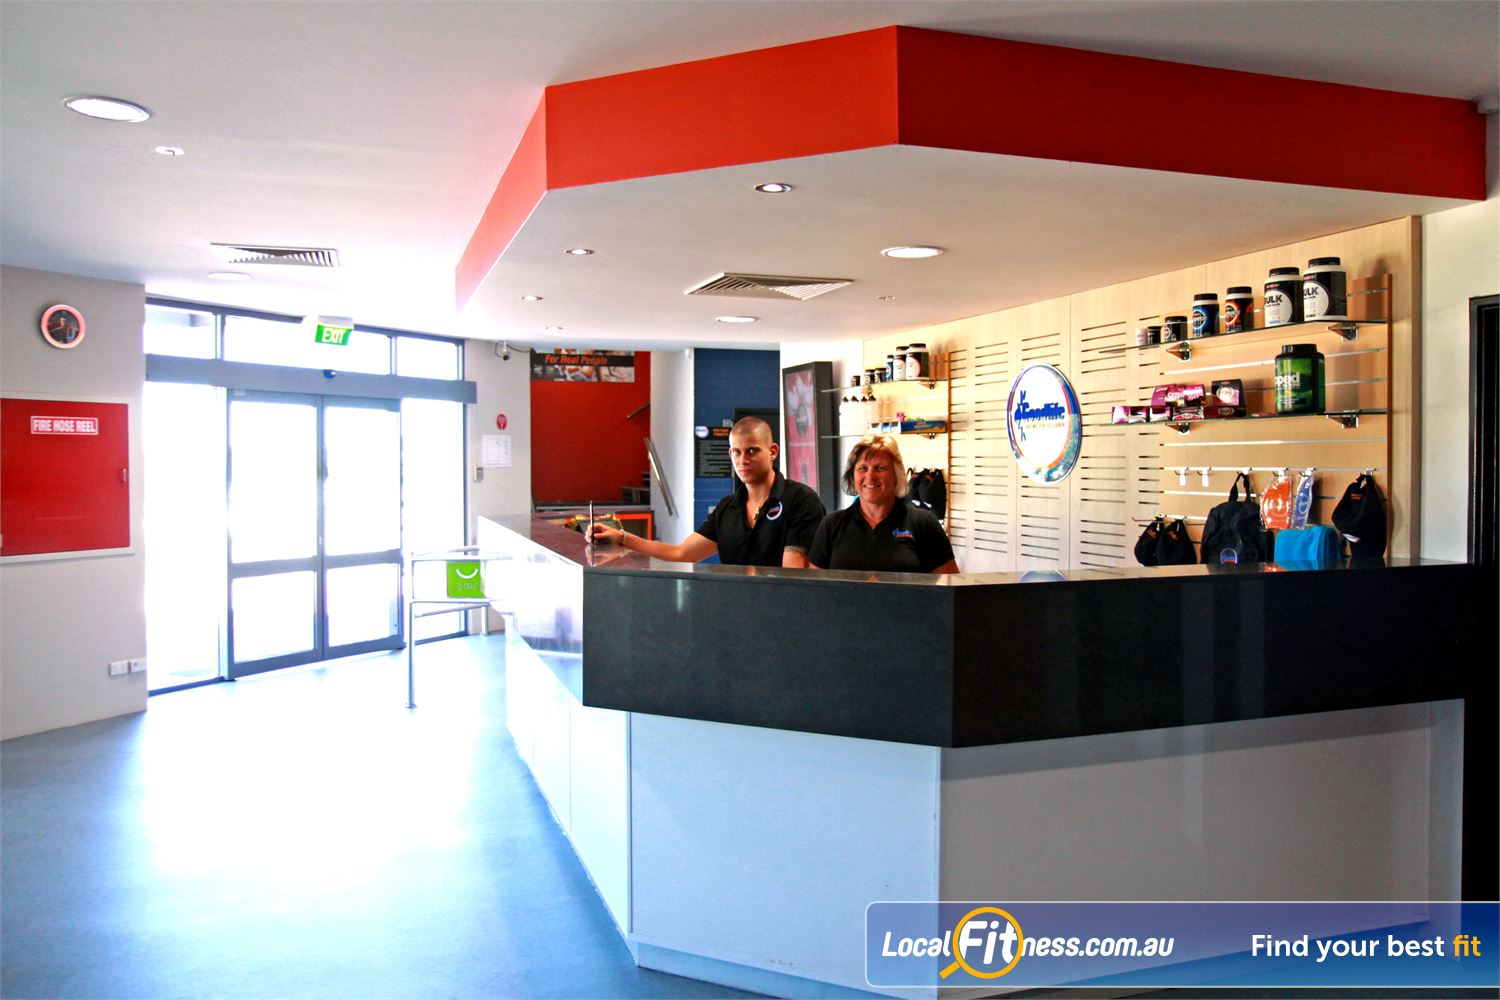 Goodlife Health Clubs Kingsway Madeley Meet our friendly Goodlife team who will take care of your every need.